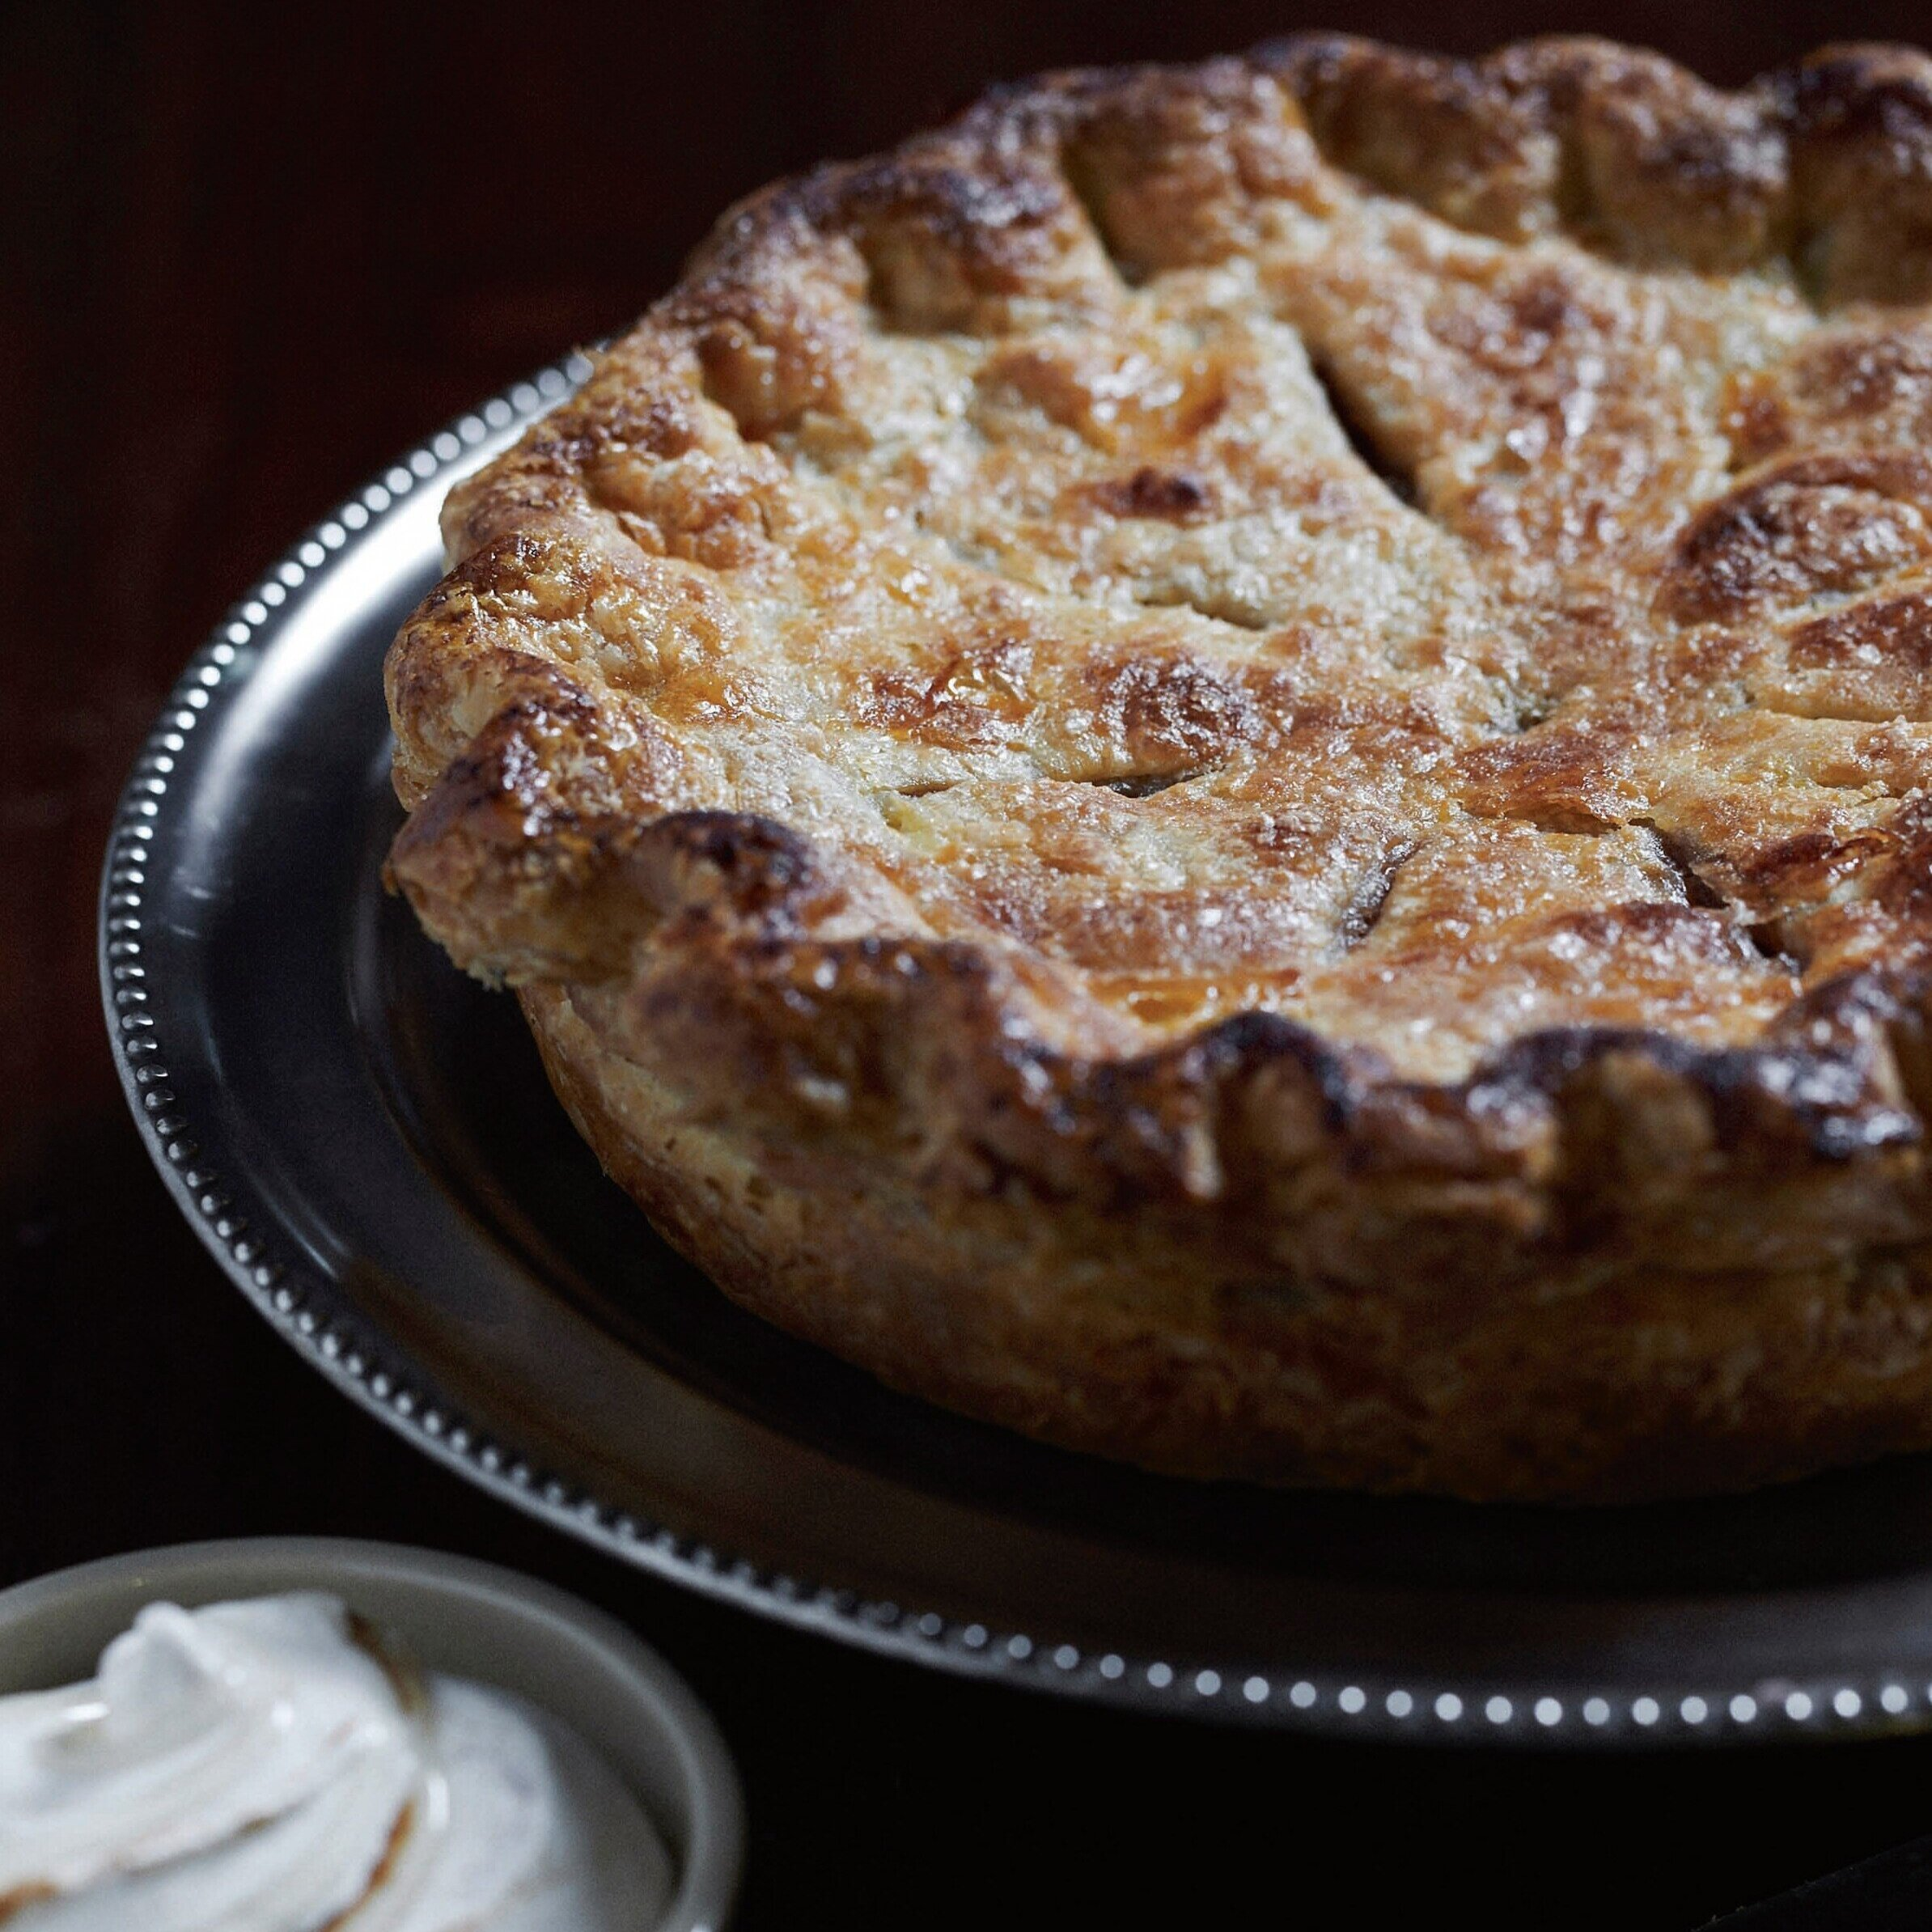 pear-and-walnut-pie-from-tyler-florence-family-meal.jpg